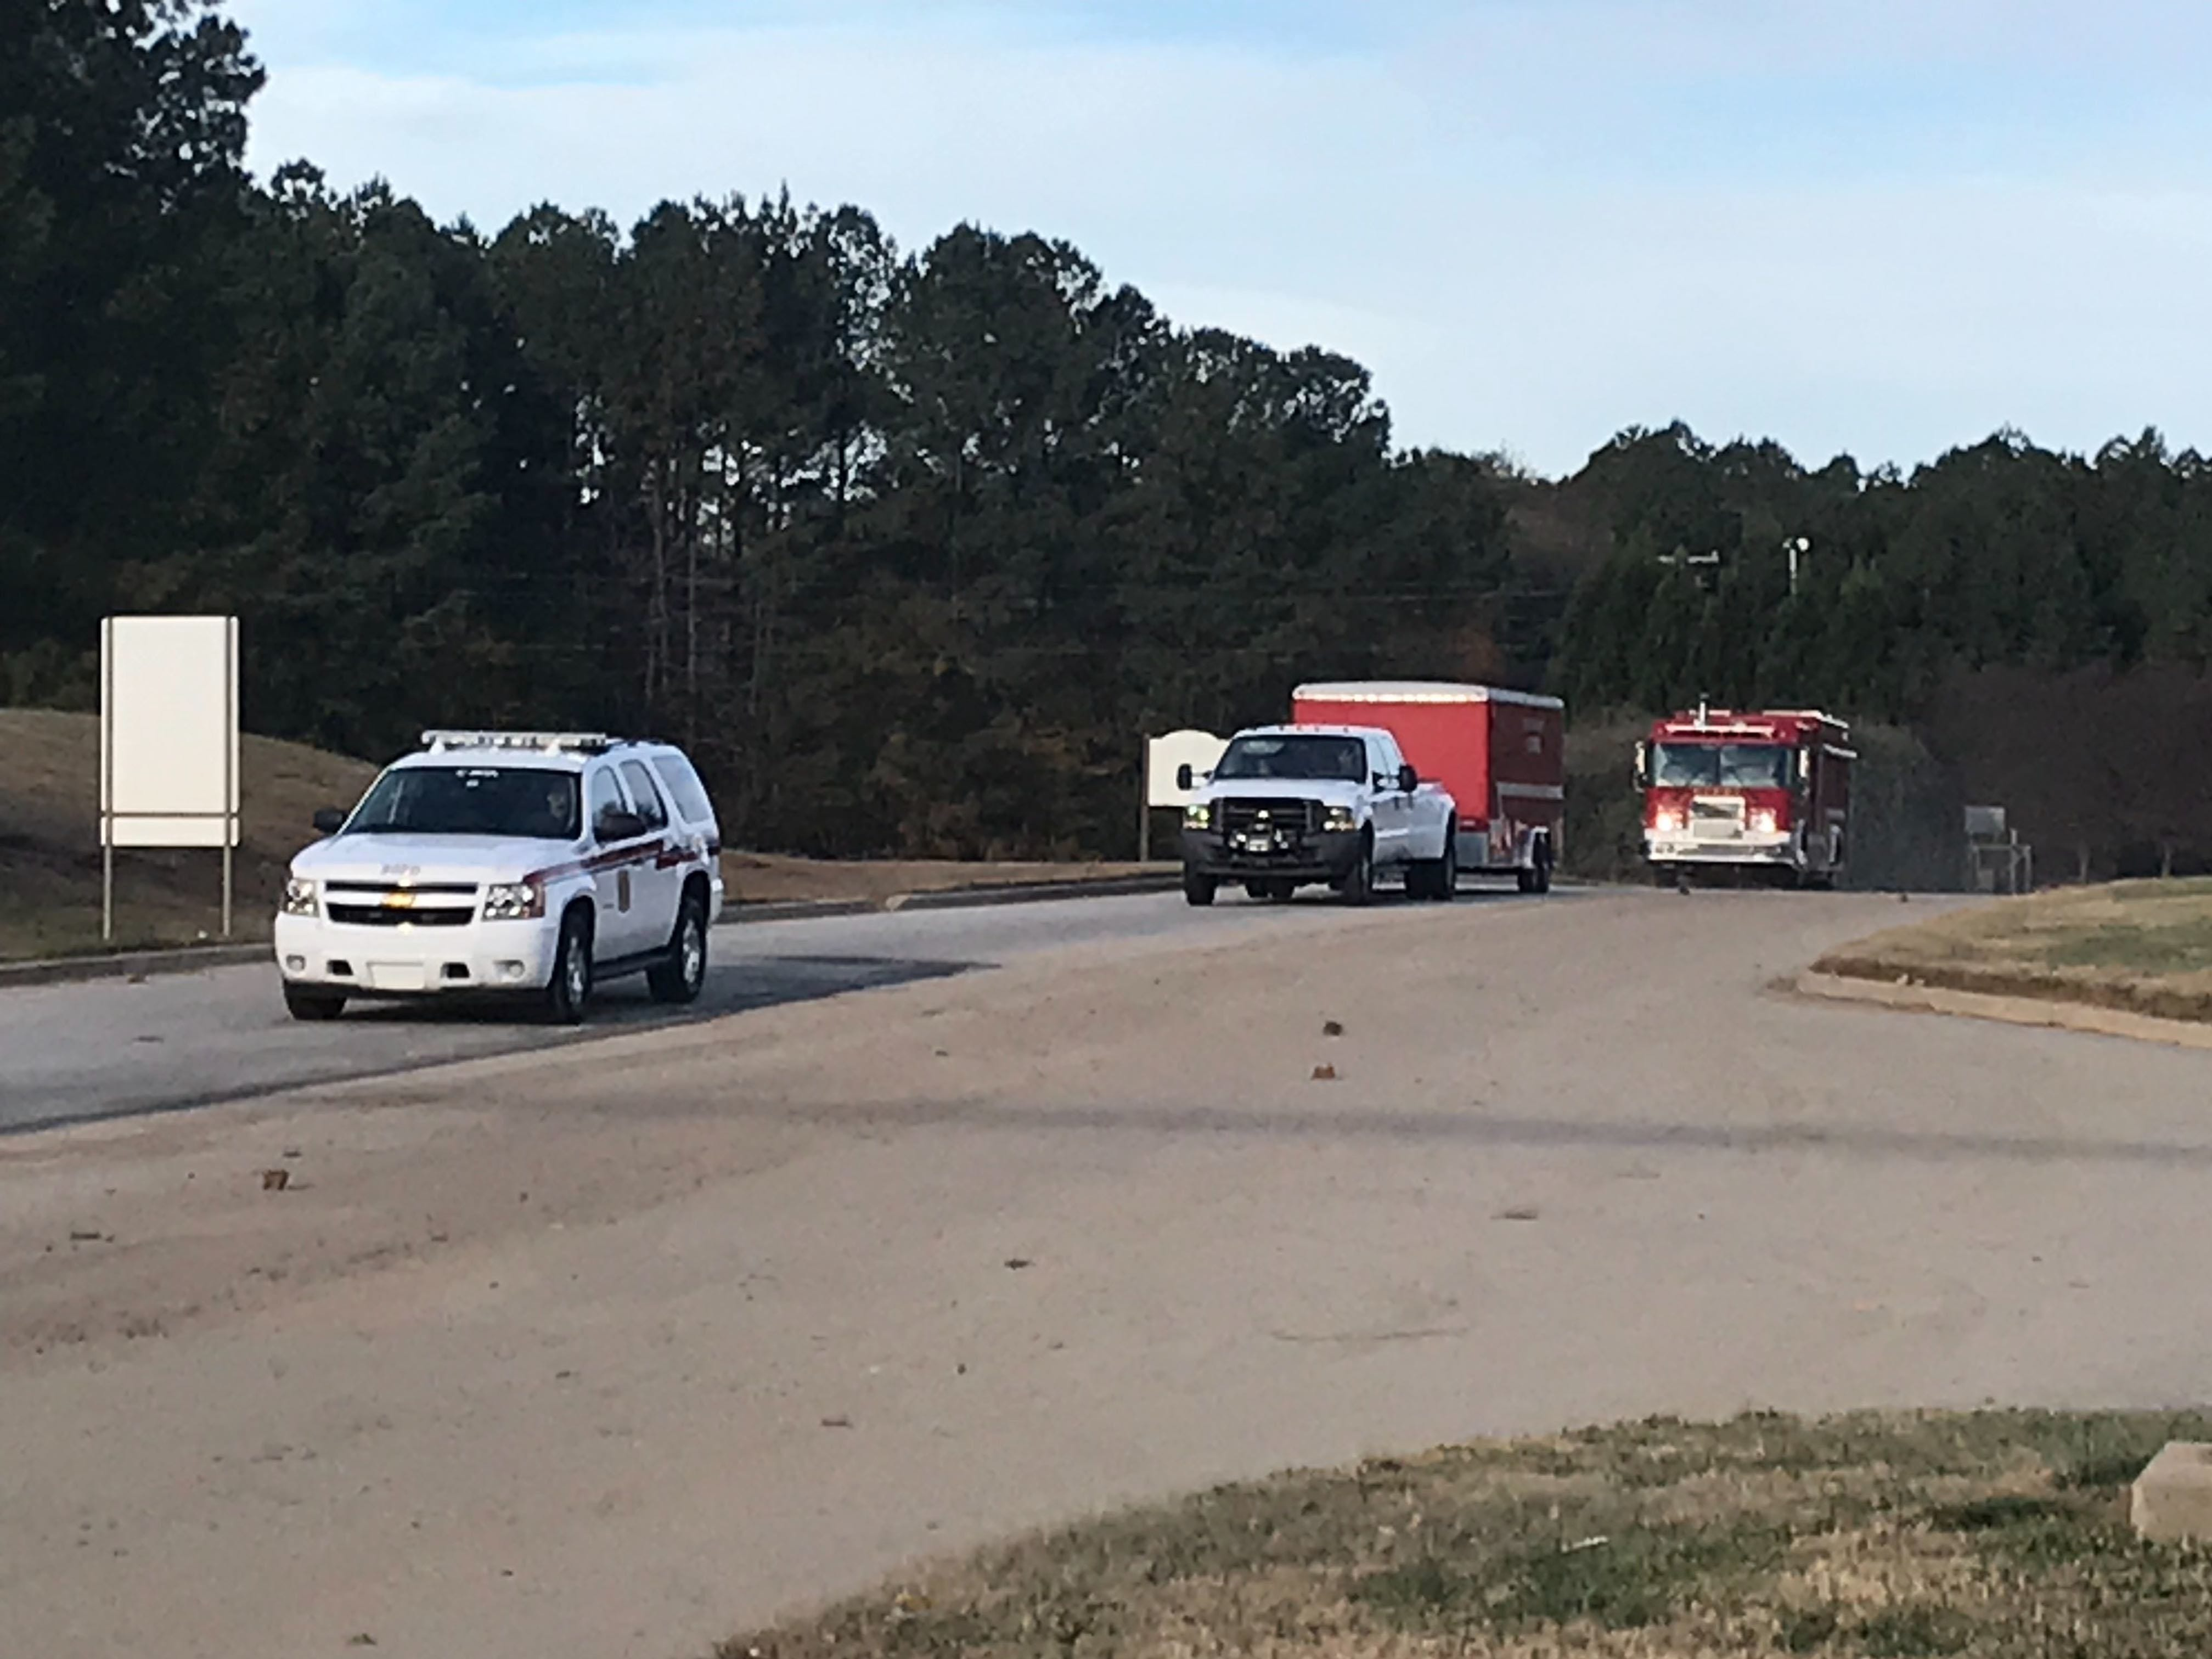 Authorities resumed a search for a baby's body at theTwin Chimneys Landfill in Greenville on Thursday, Nov. 29, 2018.